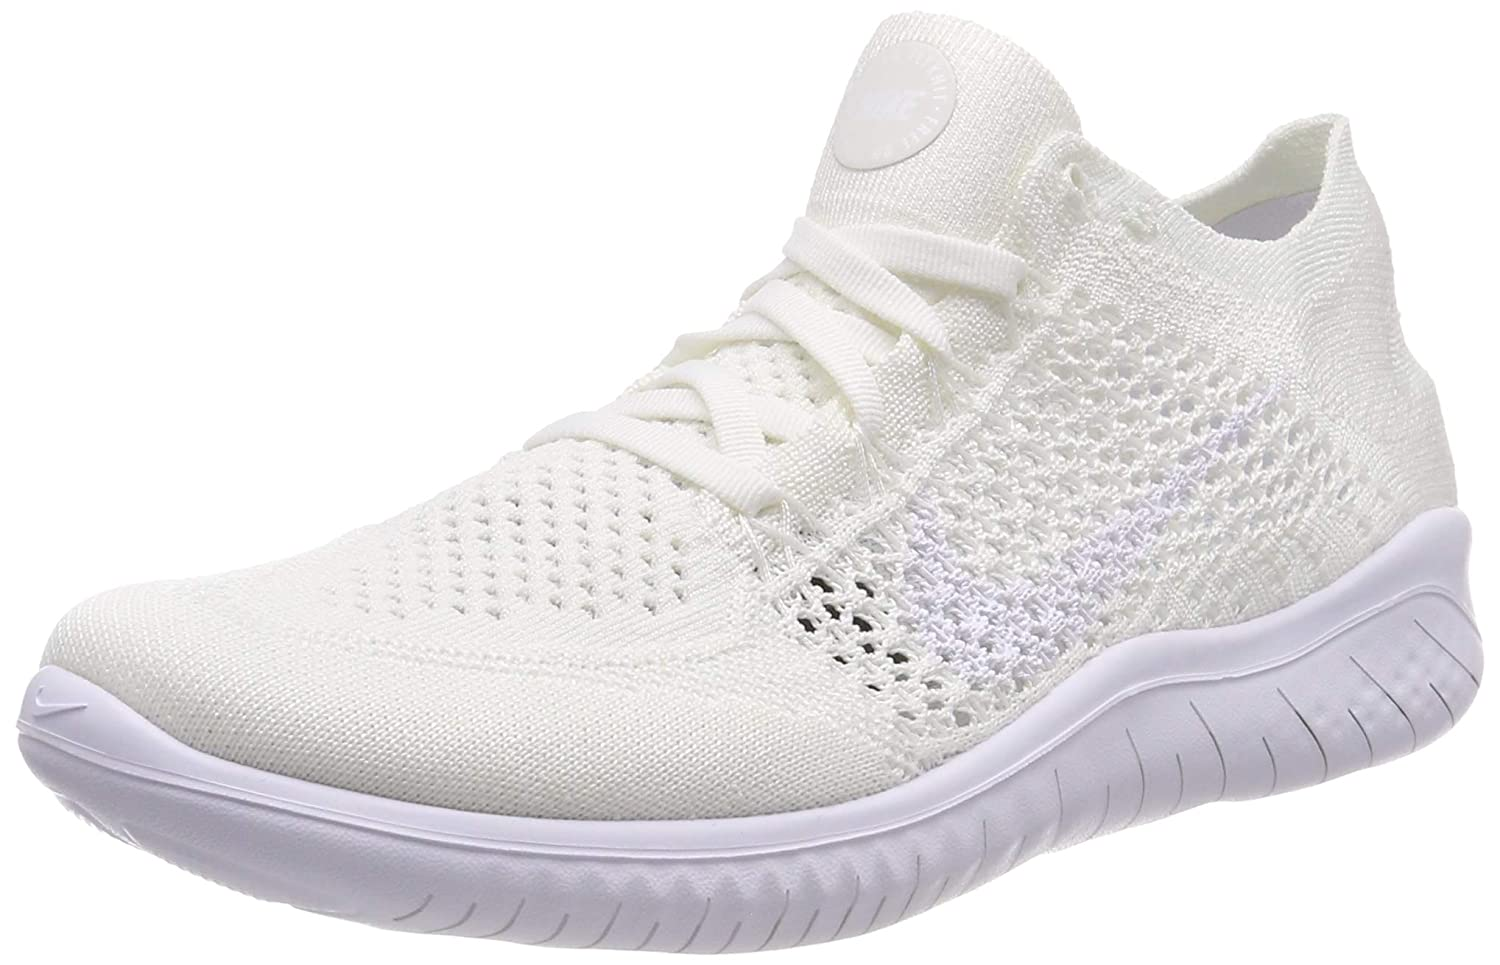 new products e93ed 42dc0 Nike WMNS Free Rn Flyknit 2018 Womens 942839-103 Size 7.5